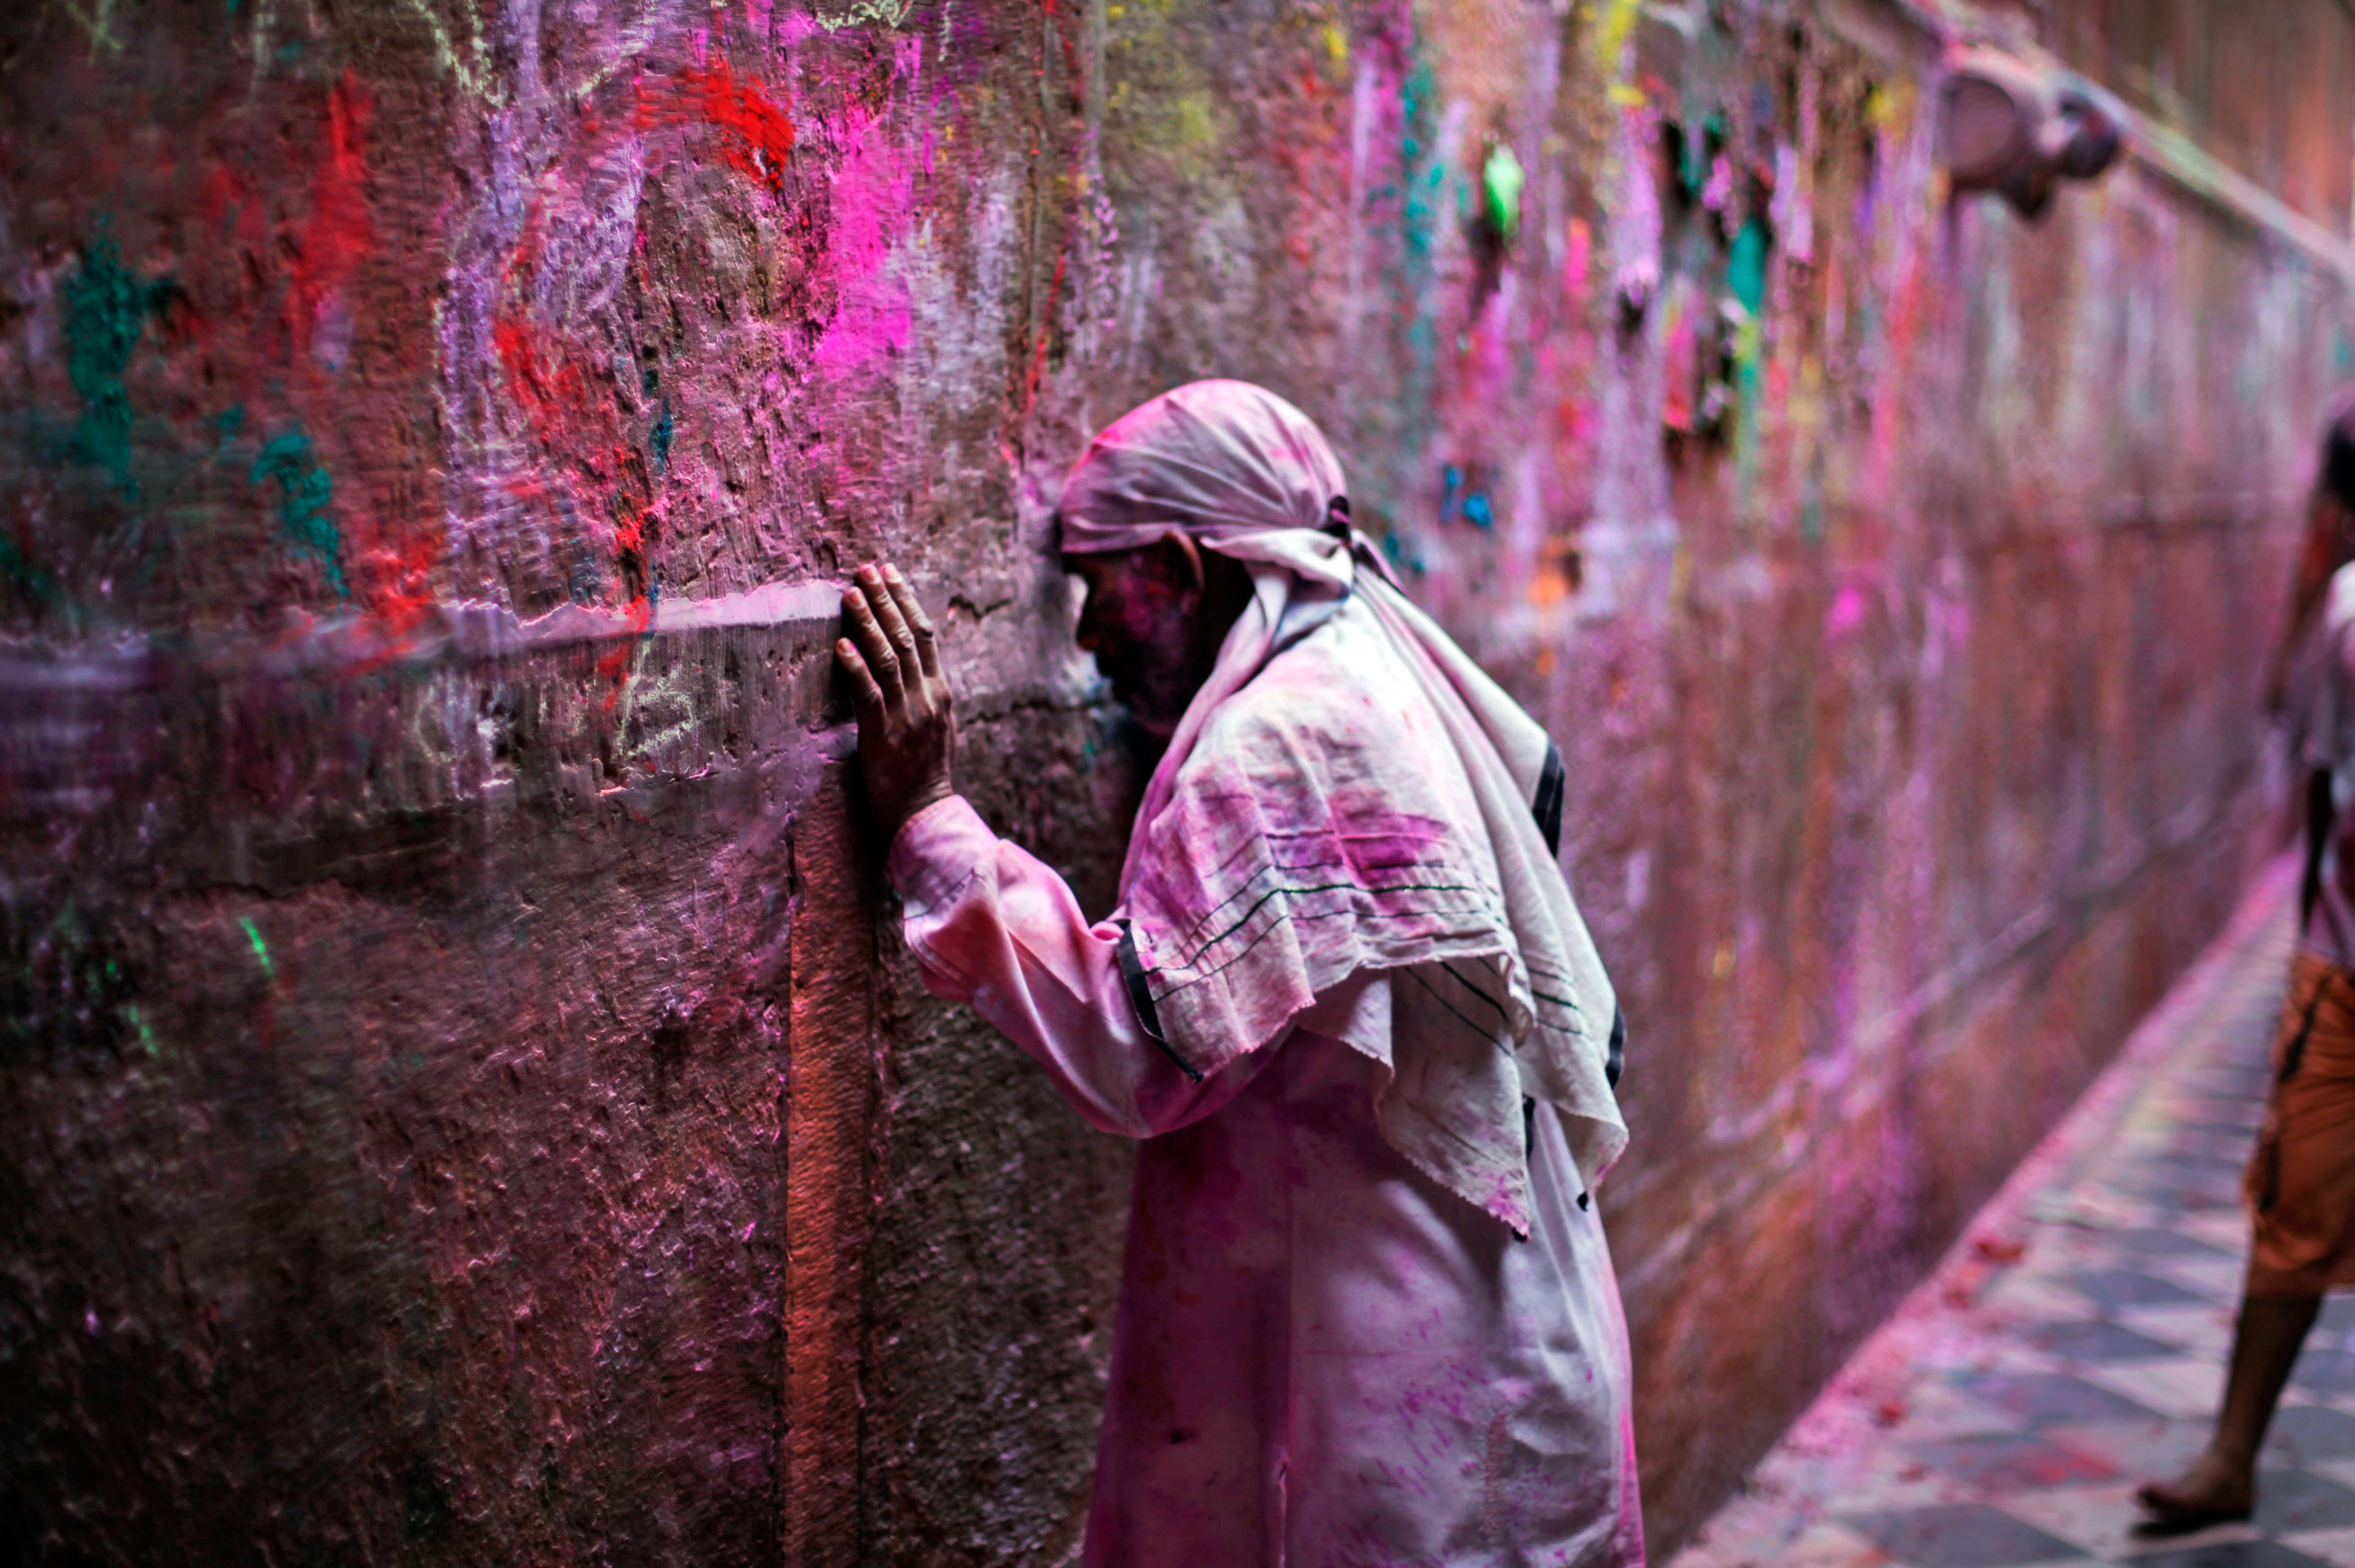 An Indian devotee rests his forehead in an act of respect on the wall of the Banke Bihari temple during Holi celebrations in Vrindavan, India, on March 27, 2013.